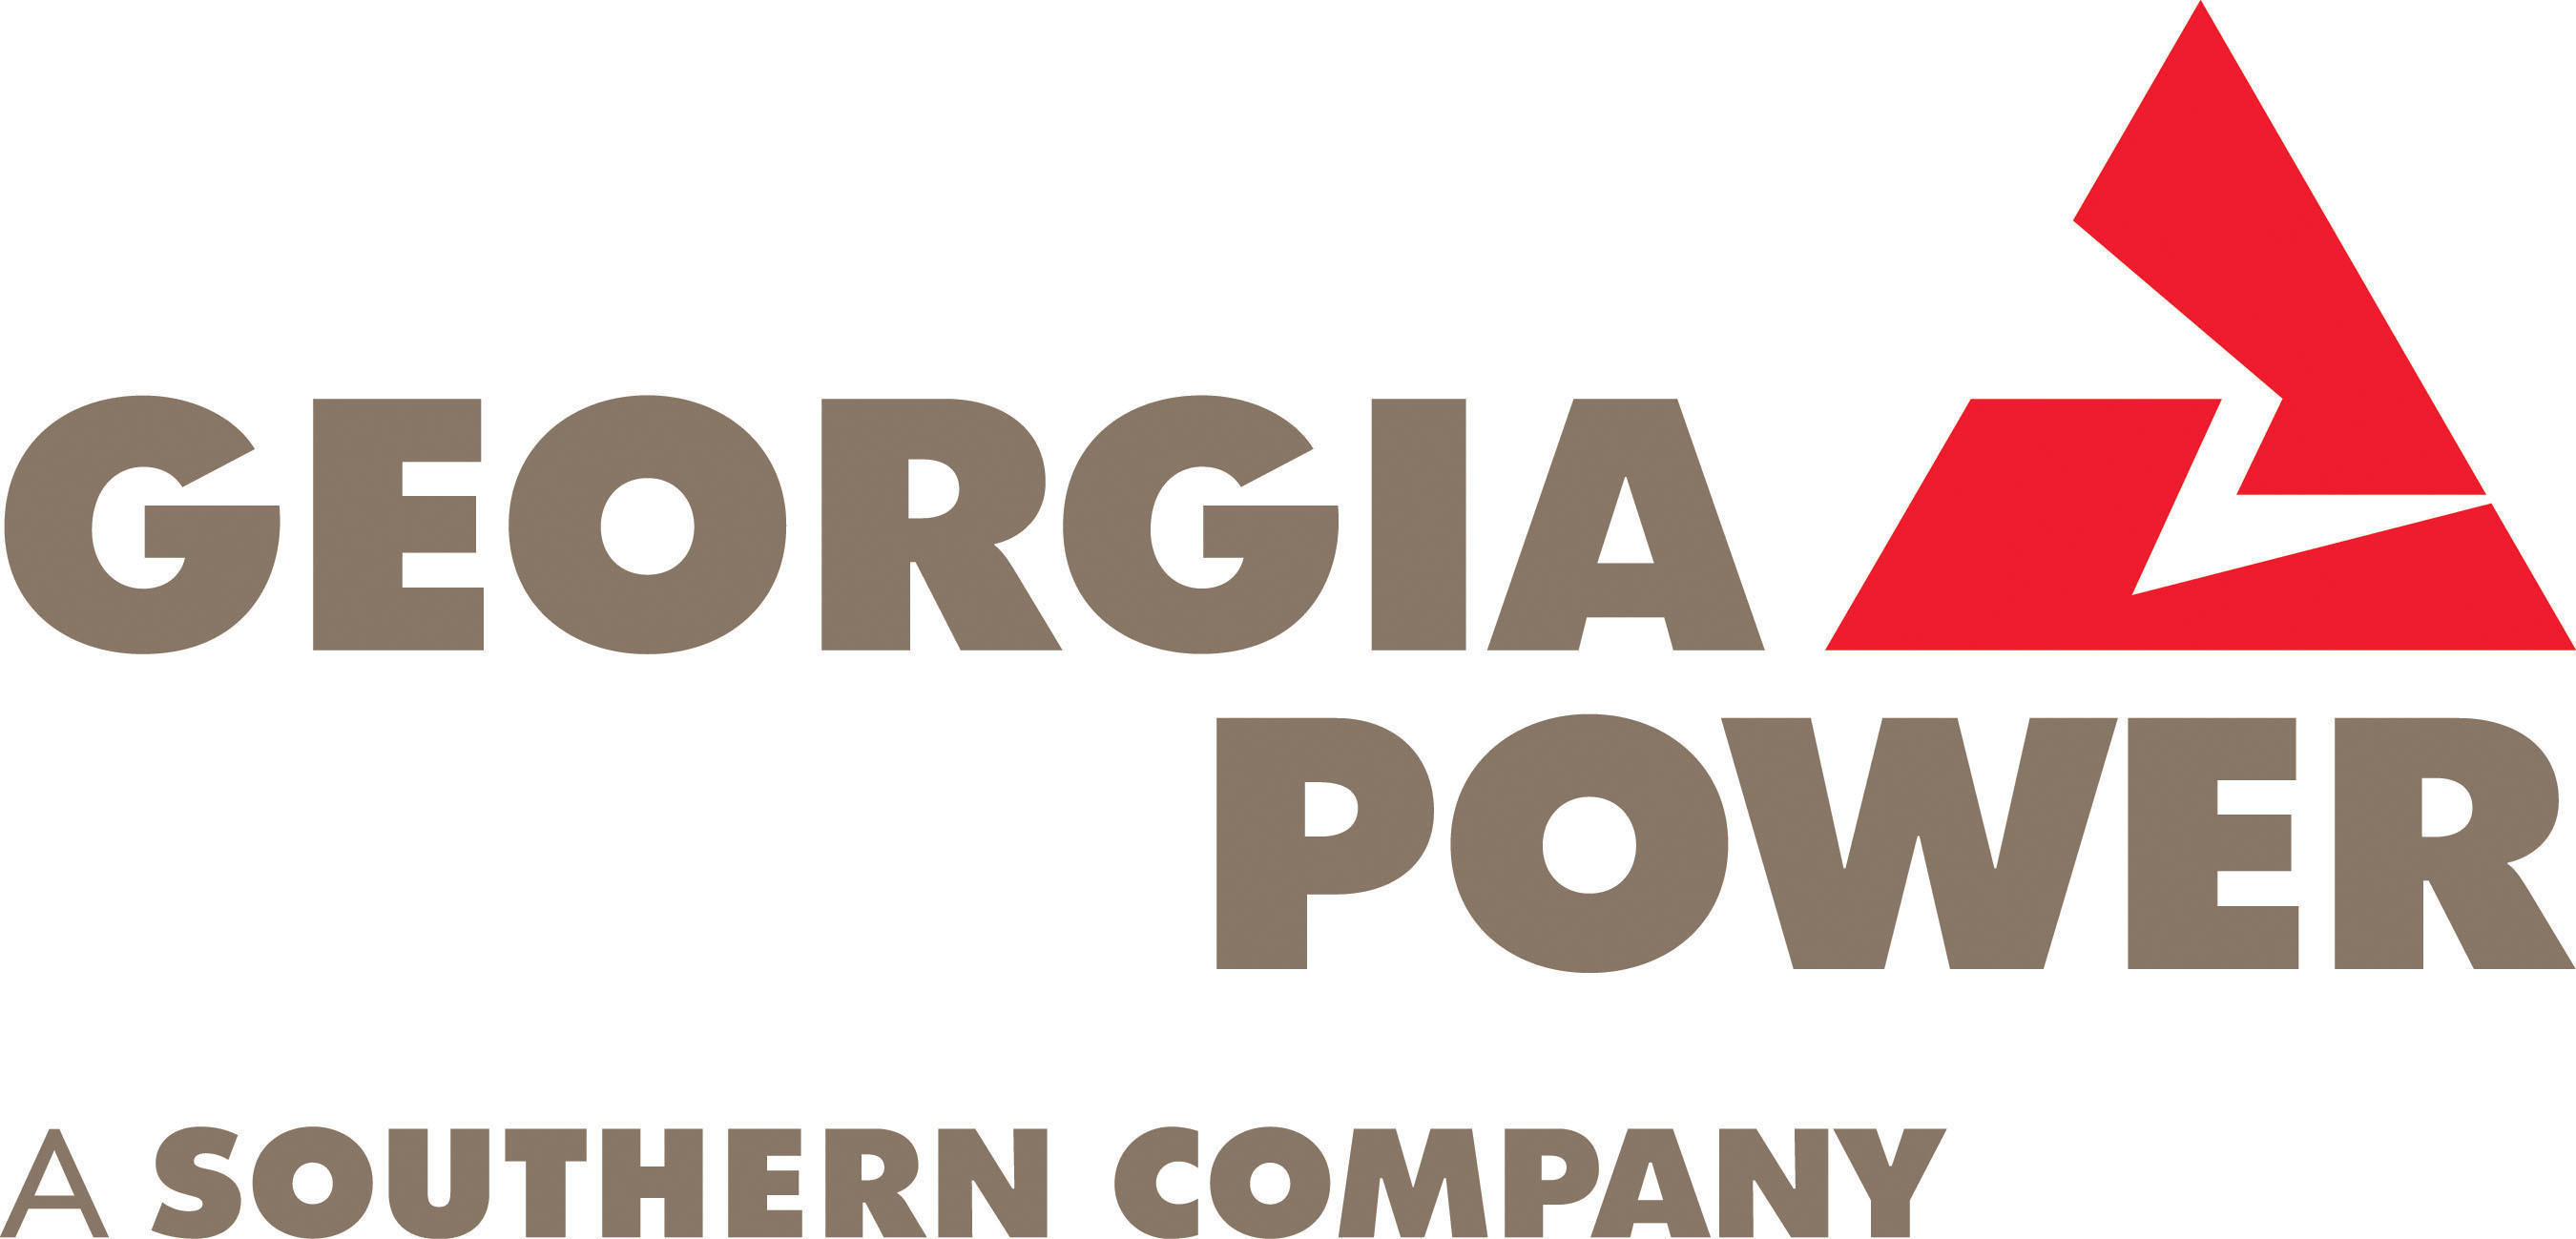 georgia-power-logo Georgia Power Requests Renewables Development In 20-Year Energy Plan